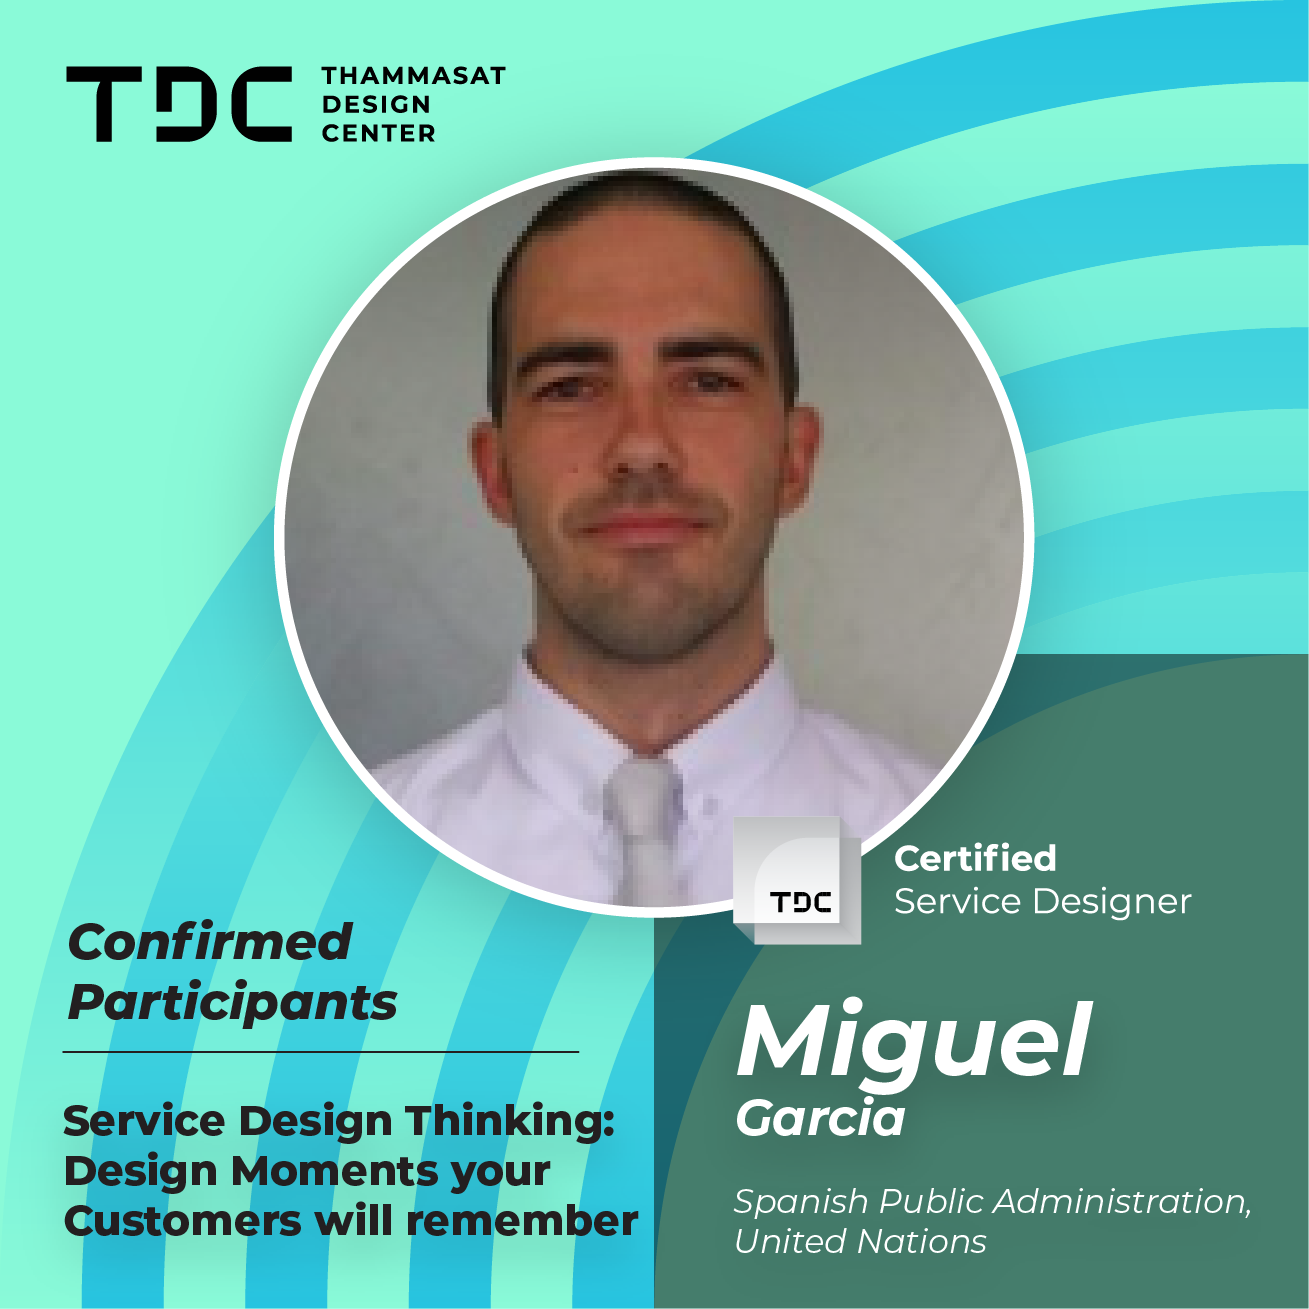 TDC Service Design [1] - Confirmed Participants-04